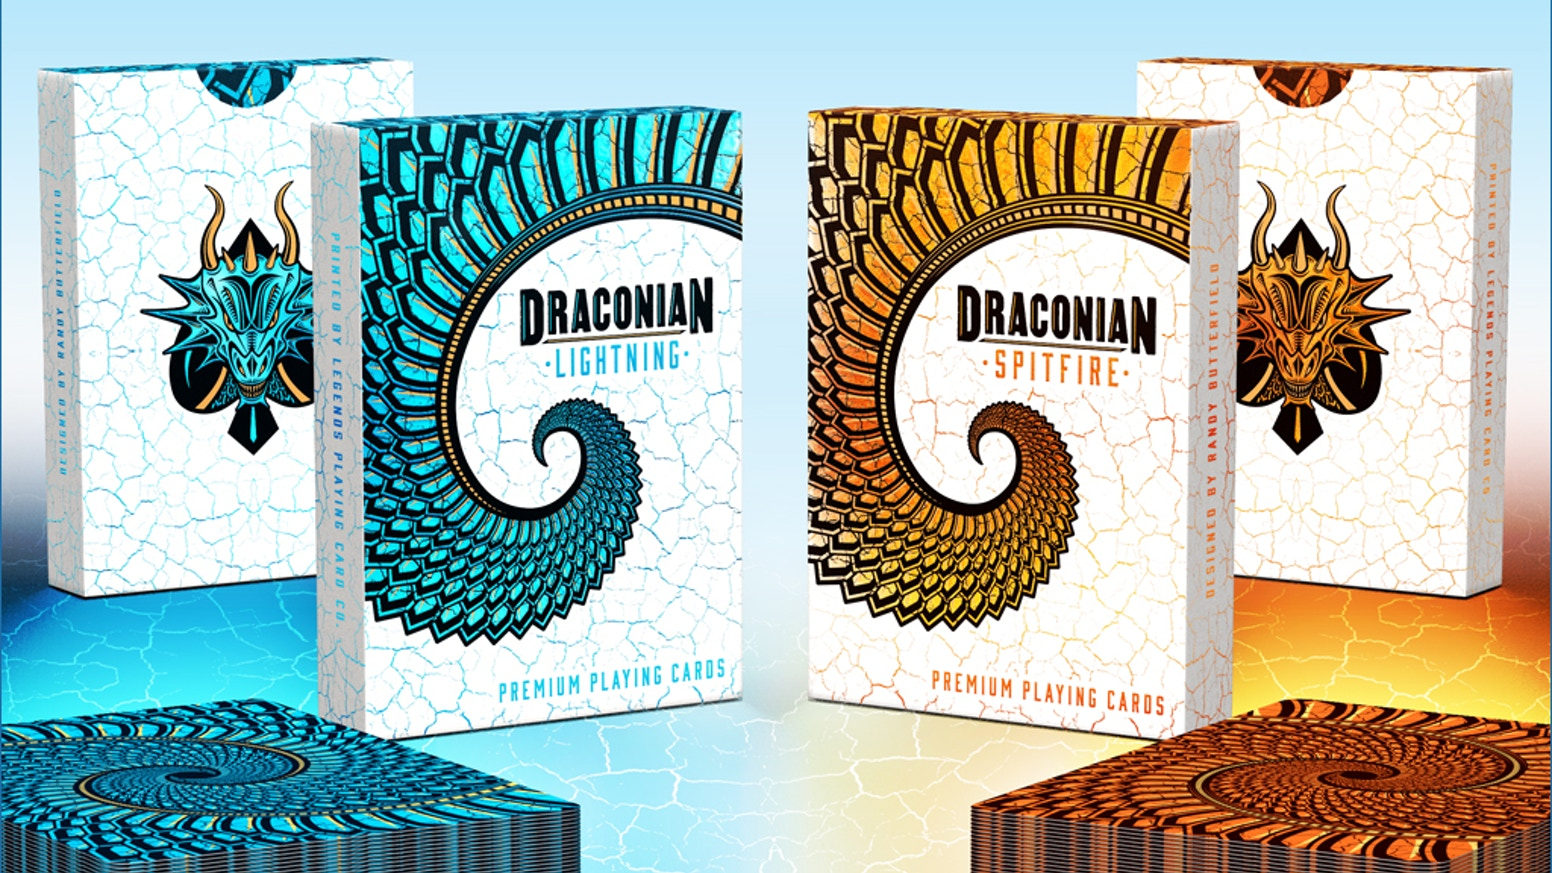 Inspired by the Dragons of lore, Draconian Spitfire and Lightning are a premium pair of custom Playing Cards.